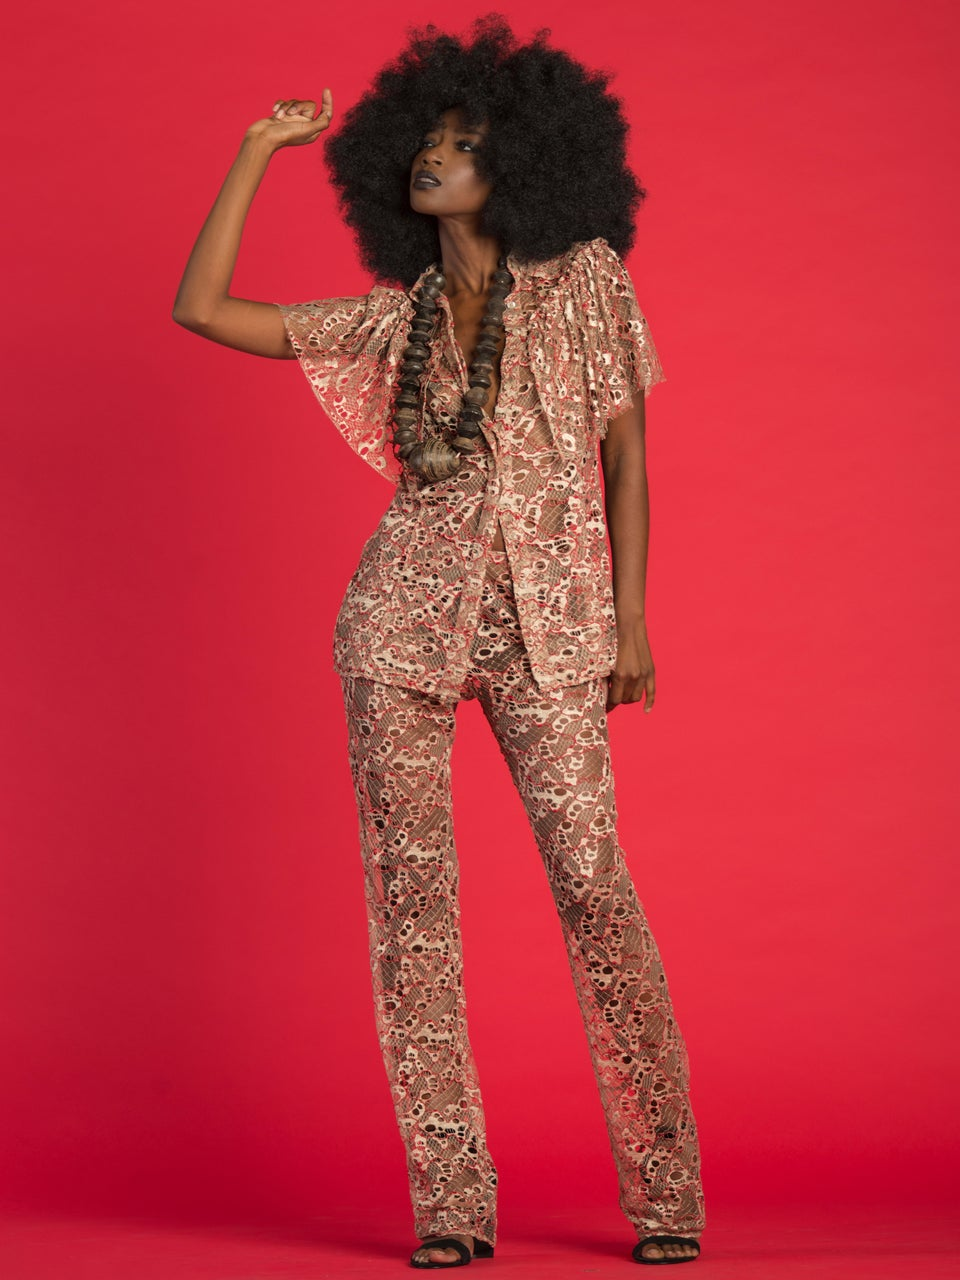 Anderson Is Back With Another Collection Titled African American